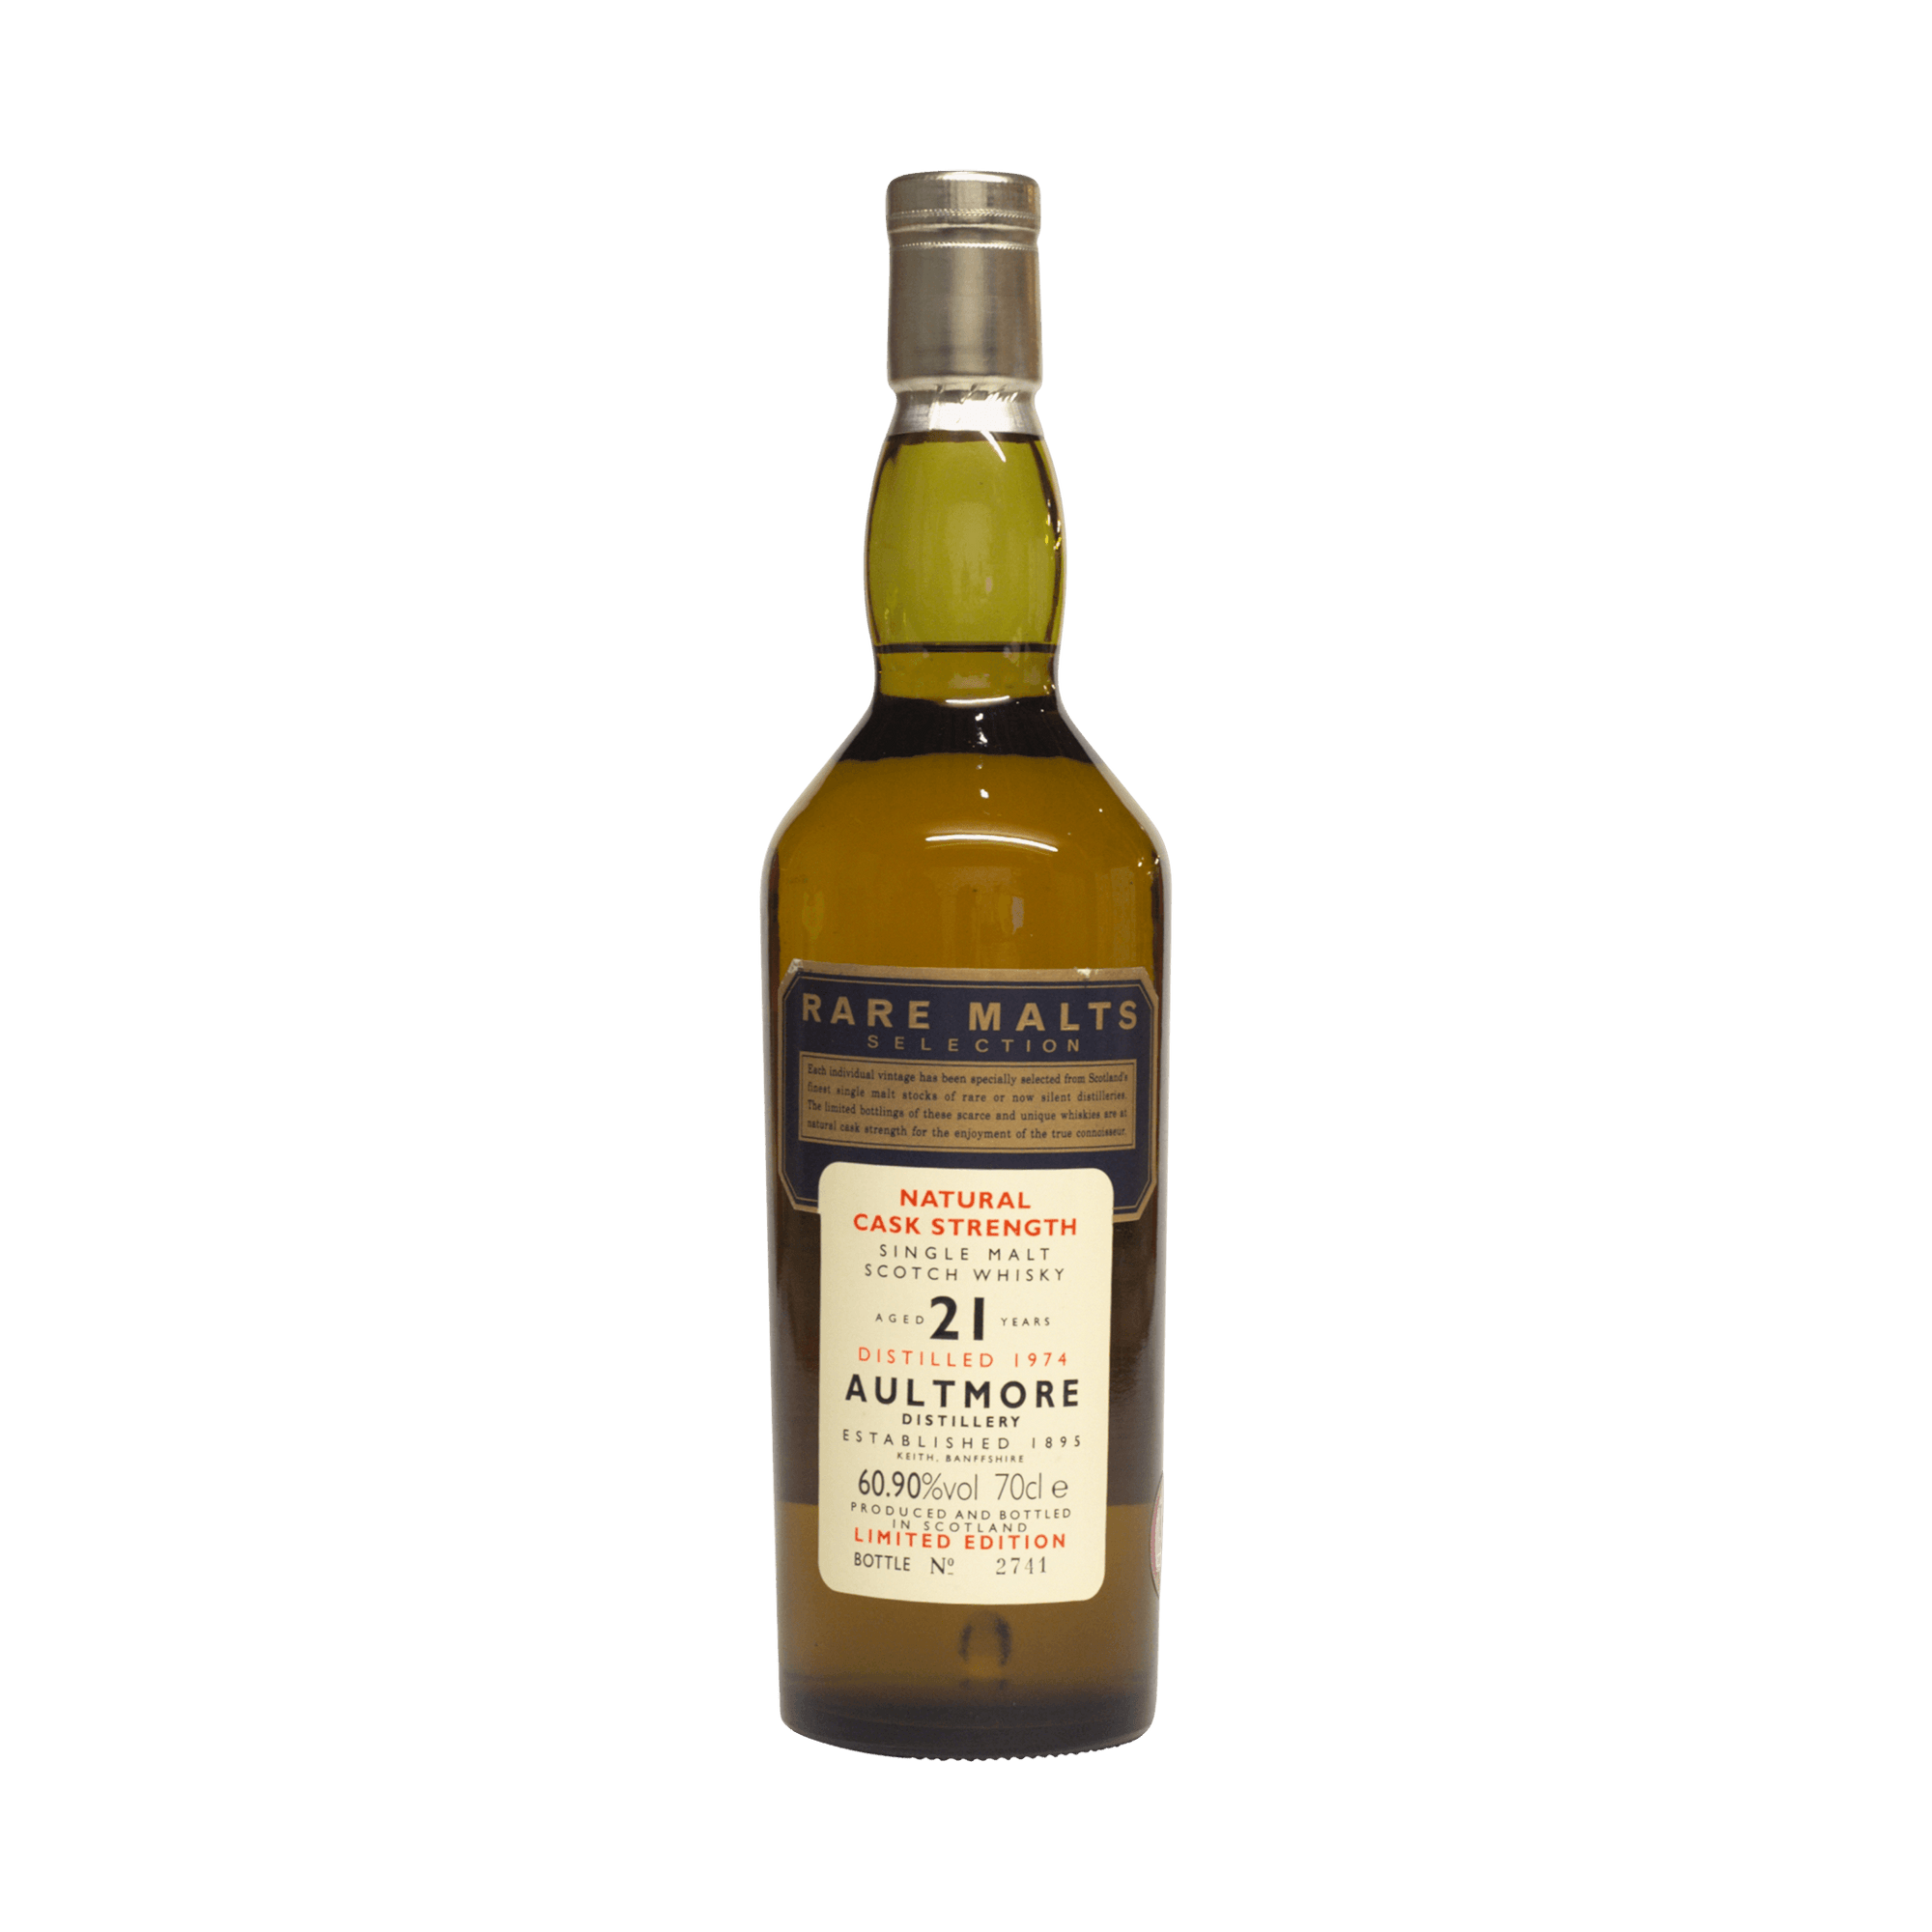 Aultmore 1974 21 Year Old Rare Malts Selection 60.90%